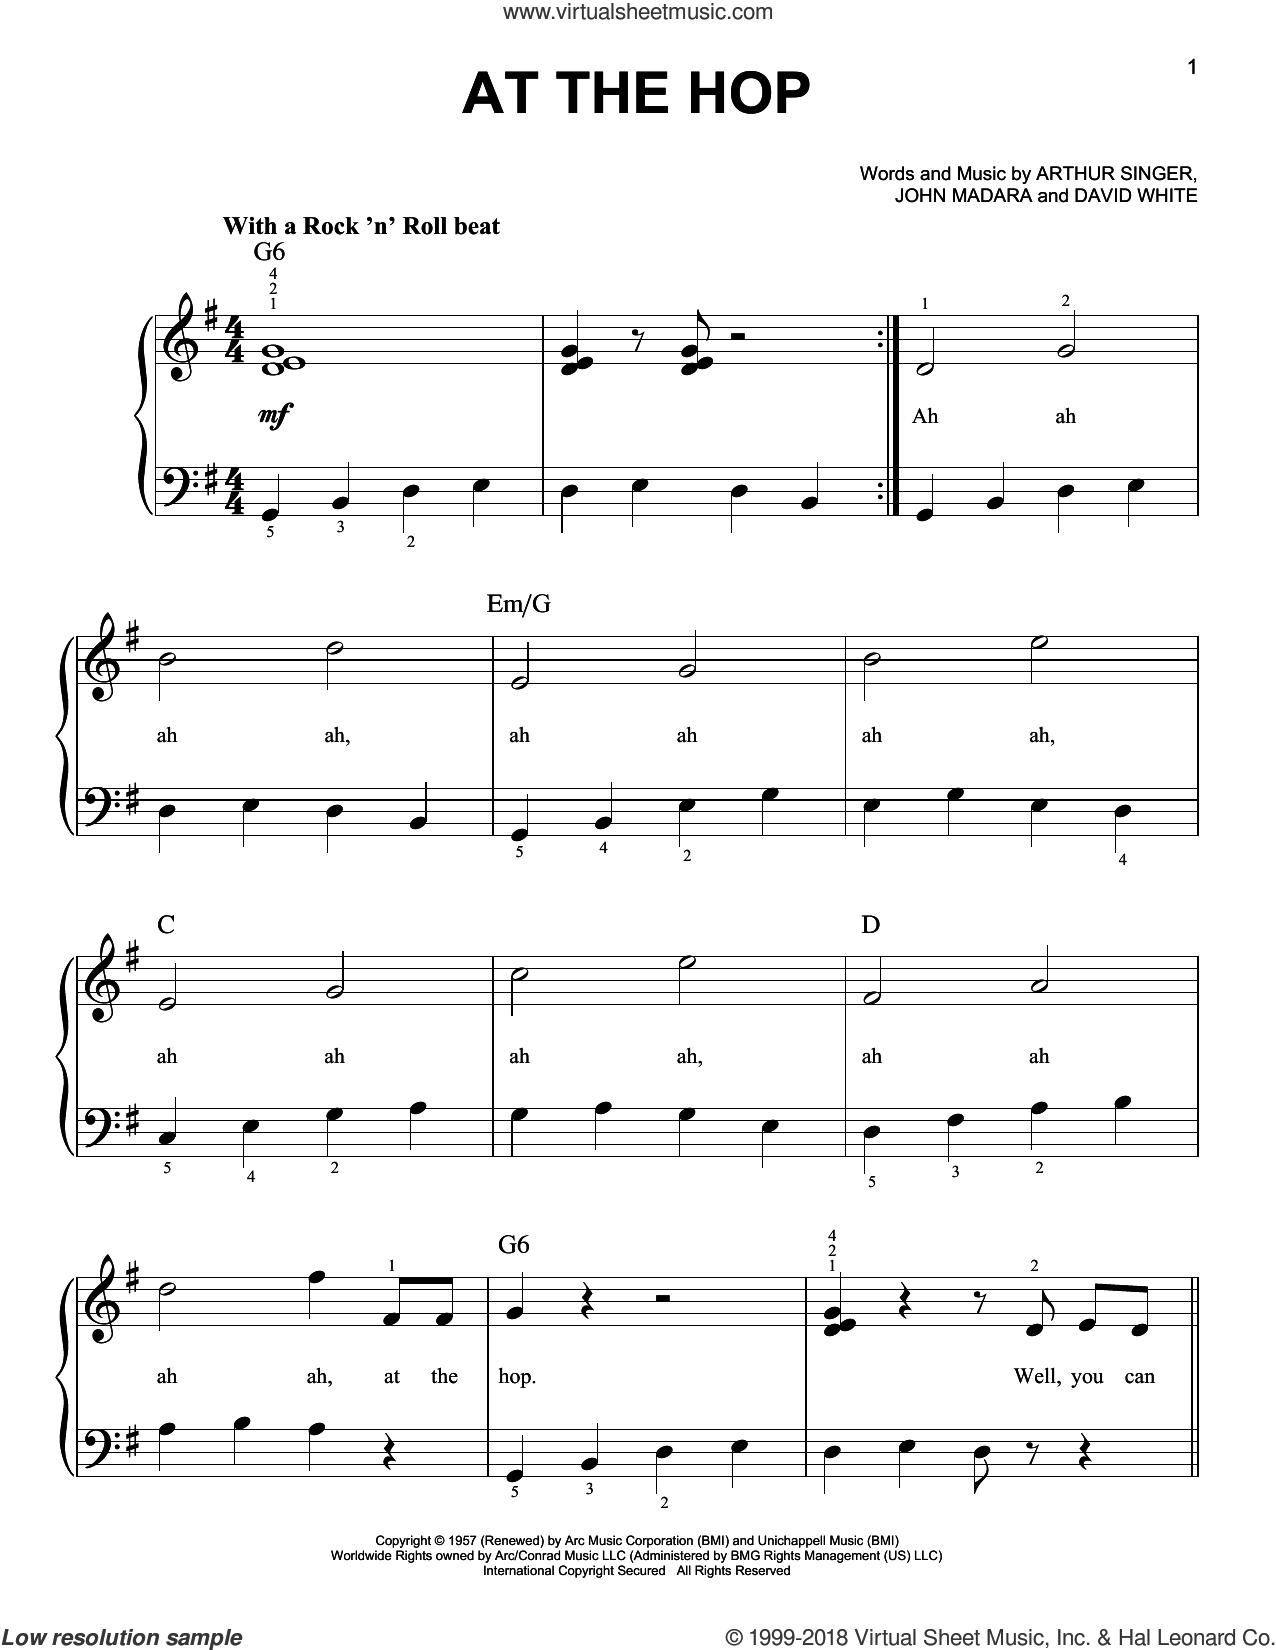 At The Hop sheet music for piano solo by Danny & The Juniors, Miscellaneous, Arthur Singer, David White and John Madara, beginner skill level